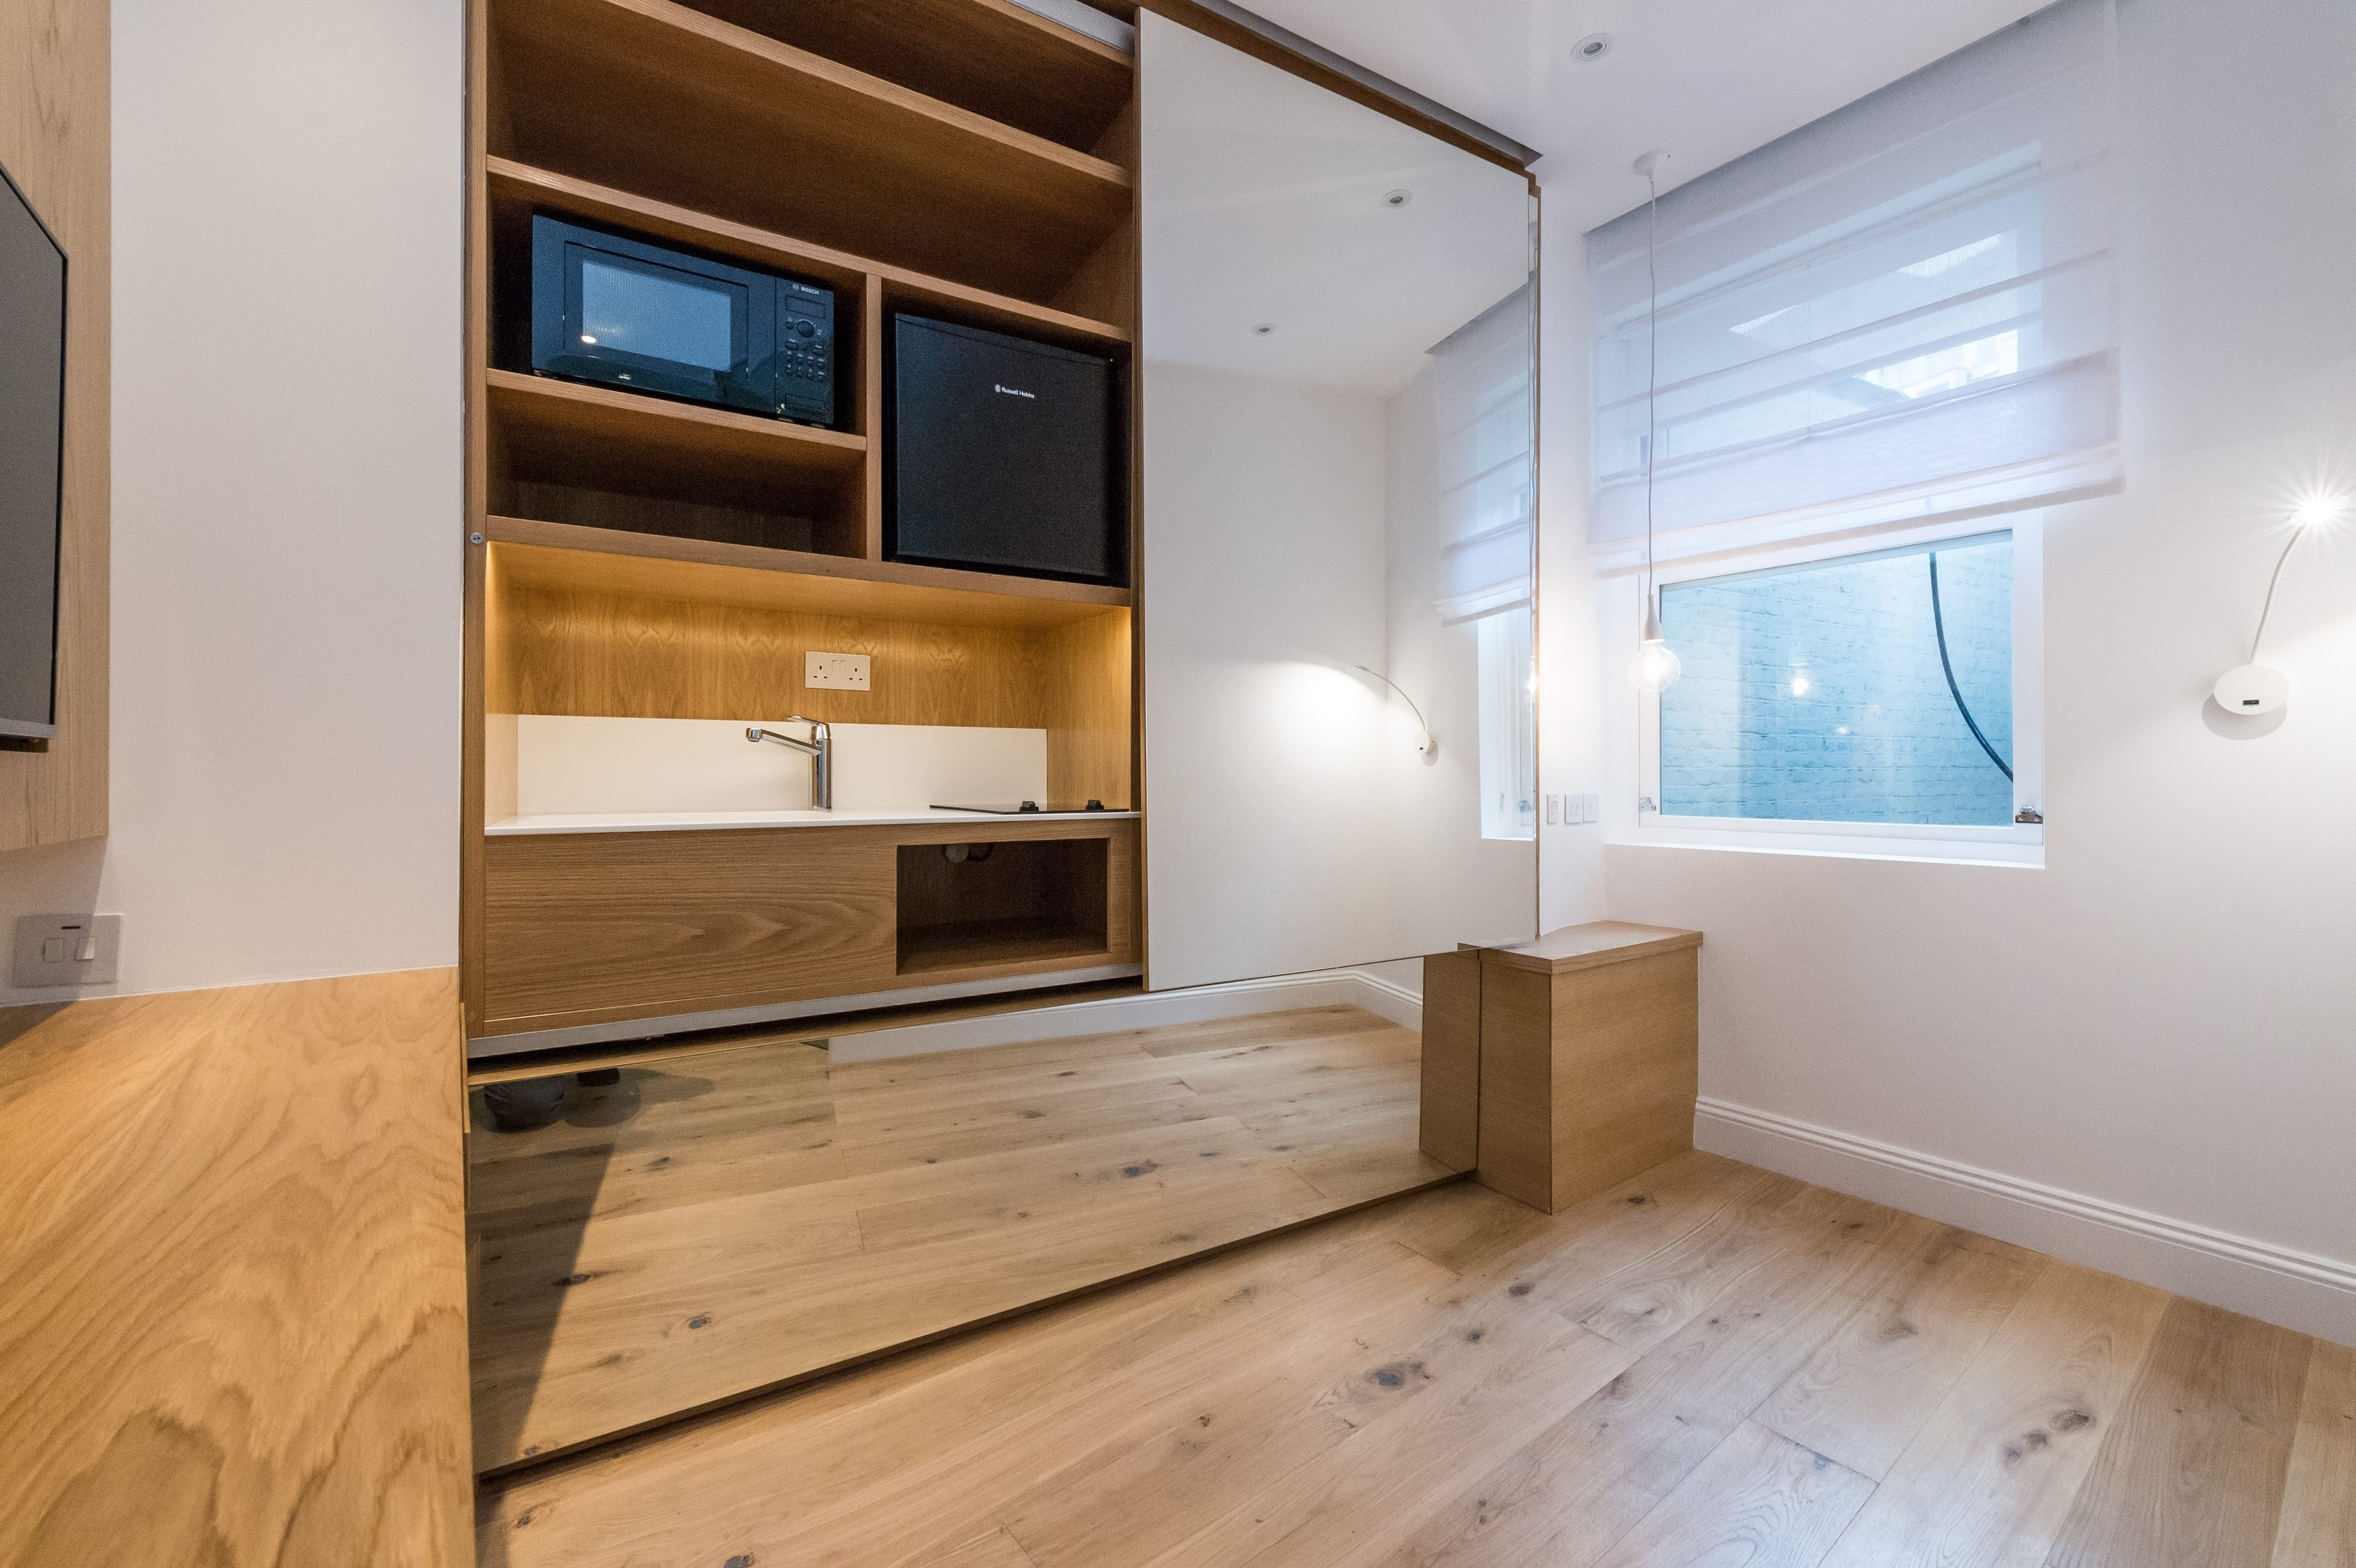 The tiny 72sq/ft flat in Princes Court, London that is on the market for £600,000.